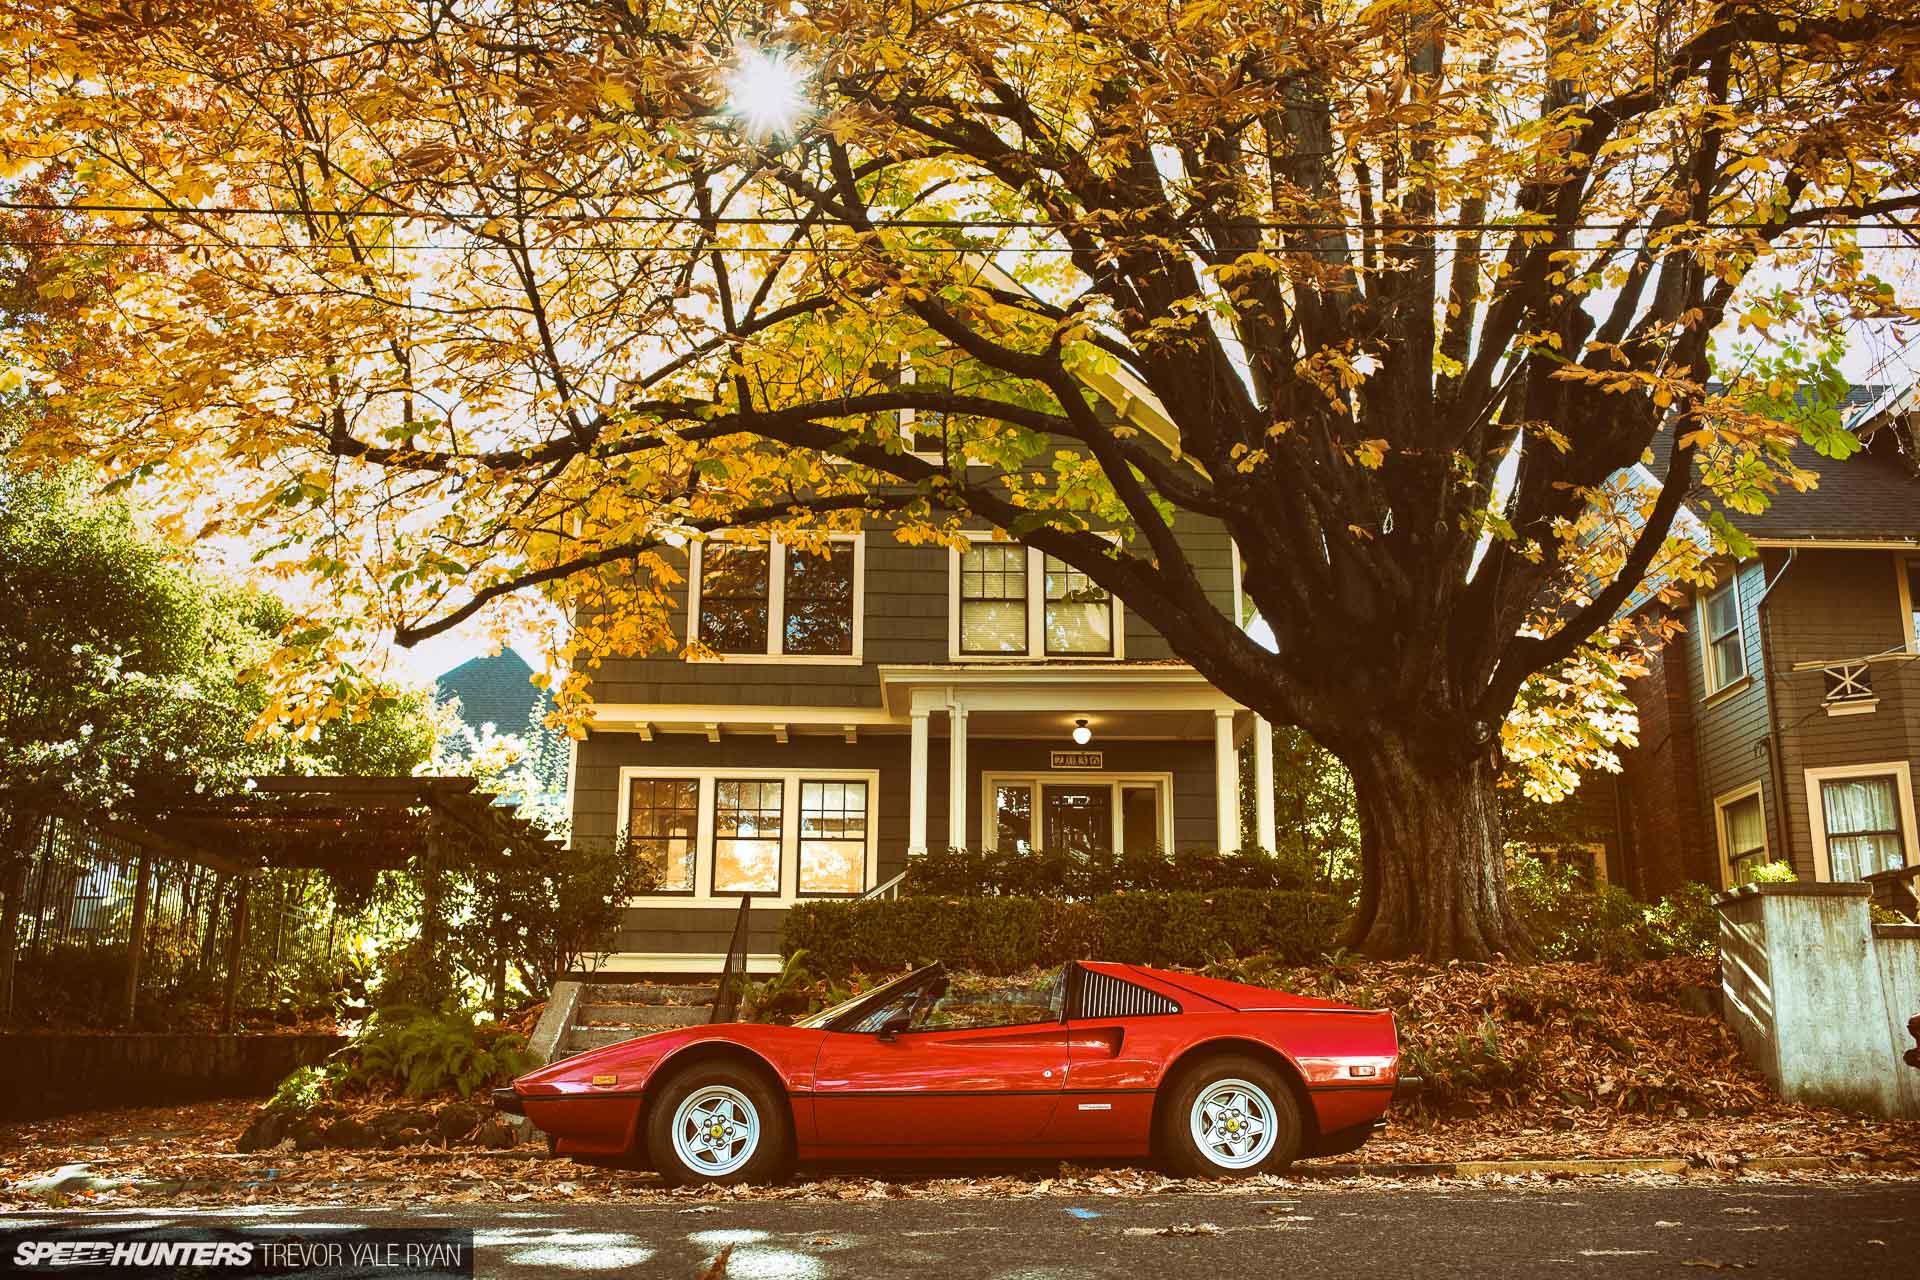 Should You Buy A House Or A Ferrari 308 Speedhunters